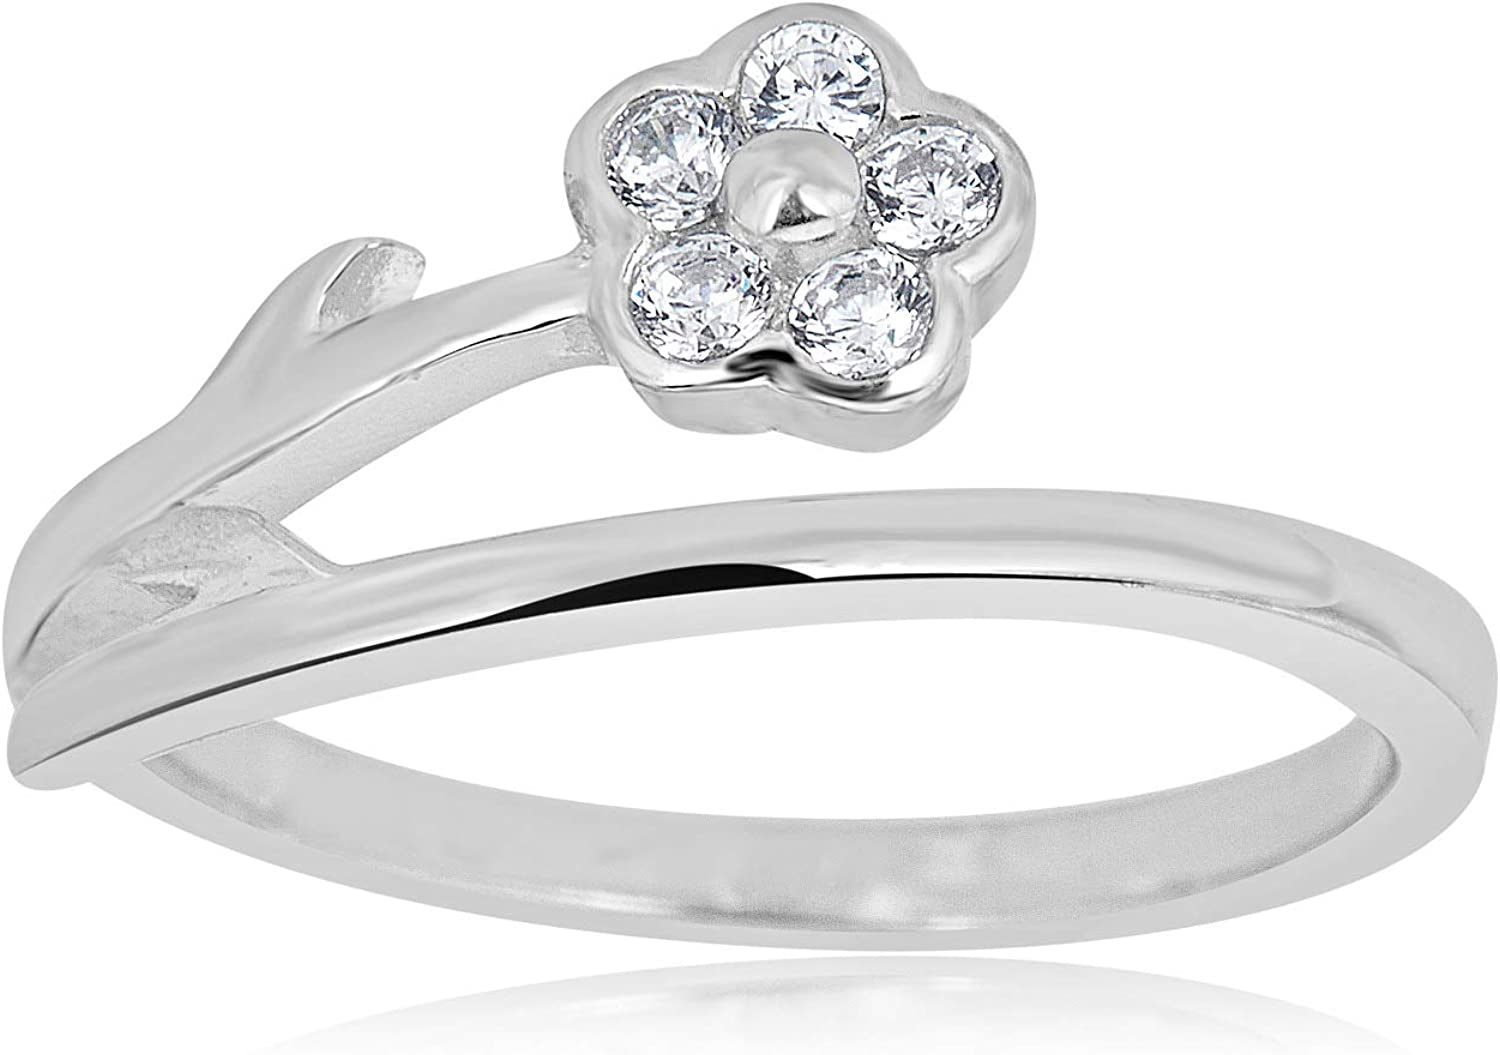 AVORA 925 Sterling Silver Adjustable Butterfly Toe Ring with Simulated Diamond CZ